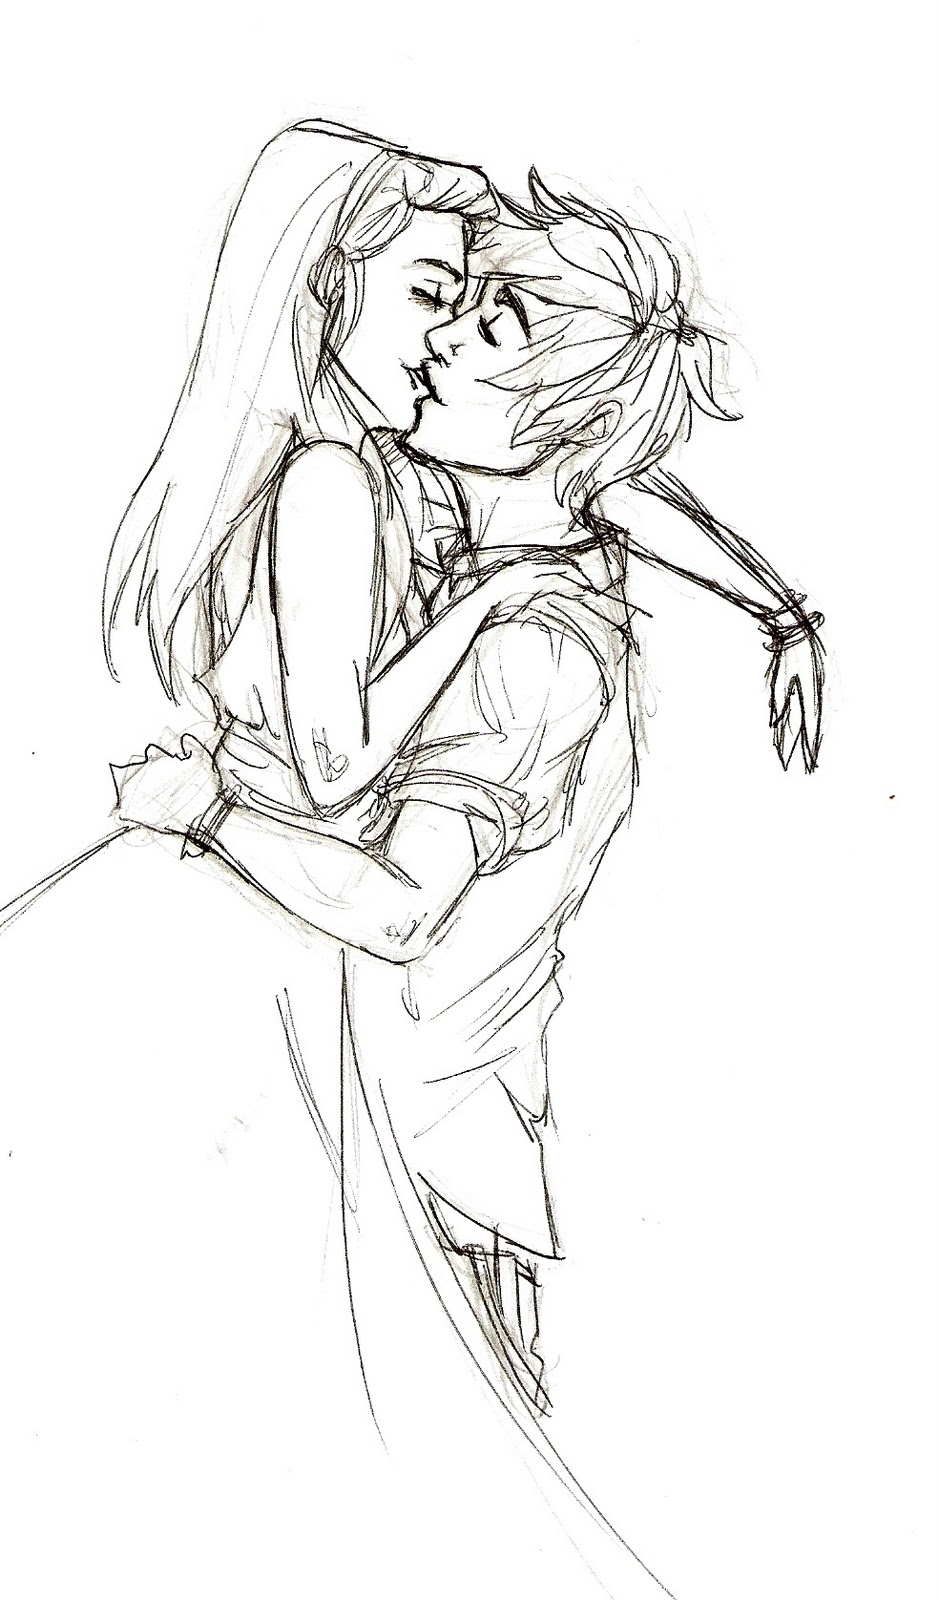 Cute Couple Pencil Drawing At Getdrawings Com Free For Personal